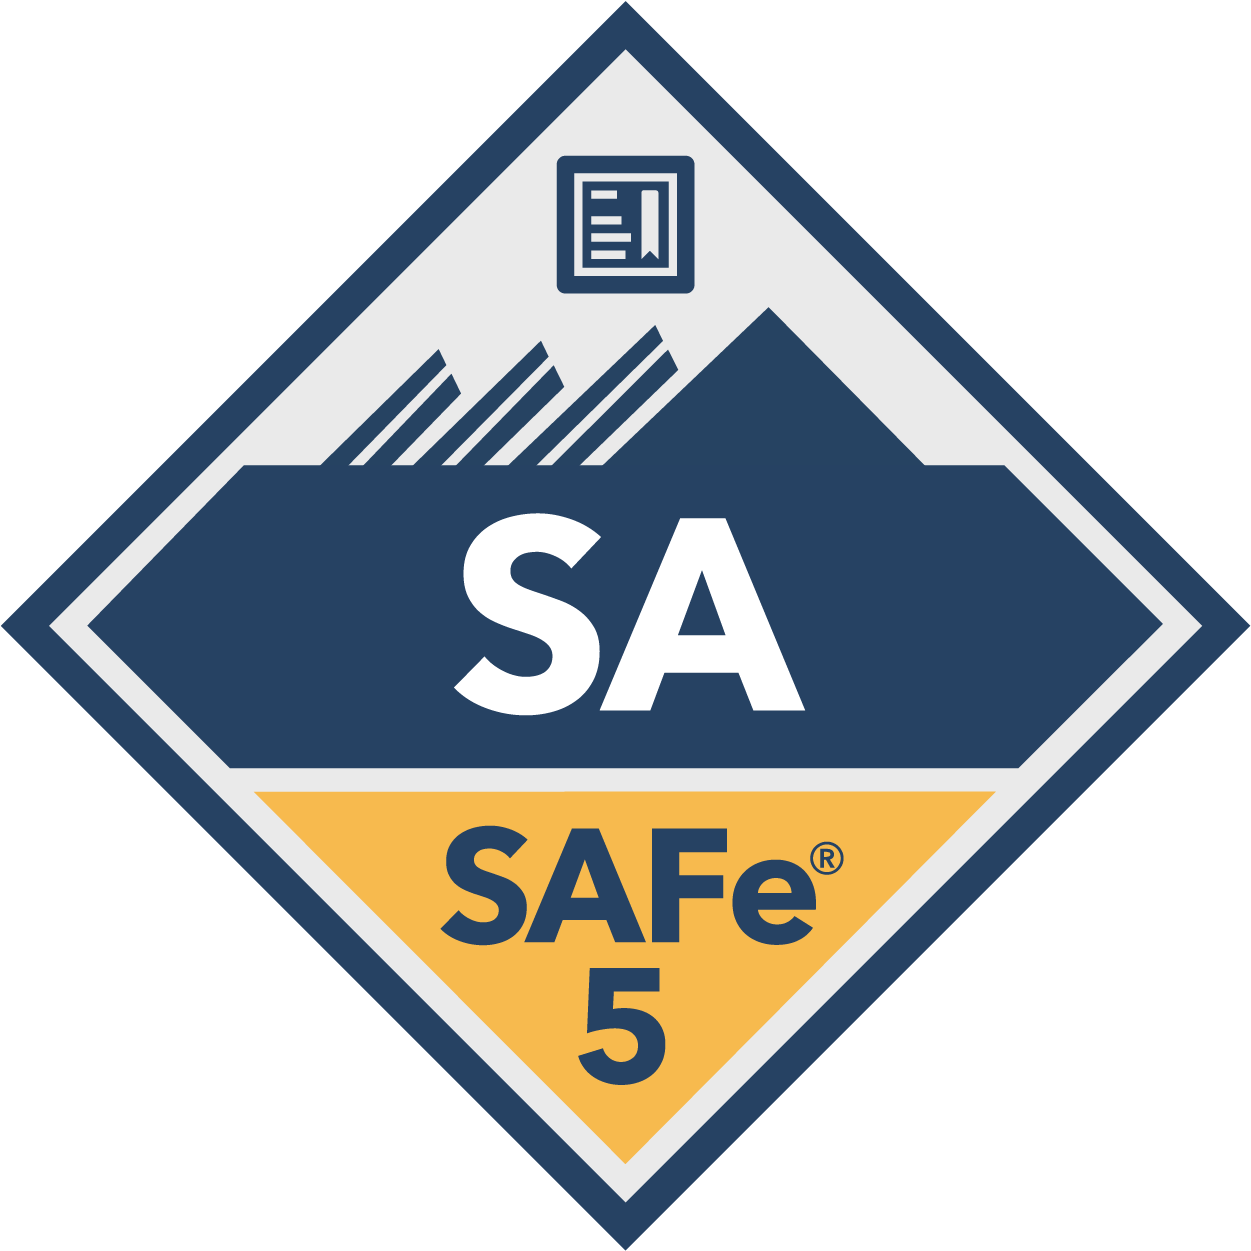 Online Leading SAFe 5.0 with SAFe Agilist(SA) Certification Atlanta, Georgia (Weekend)